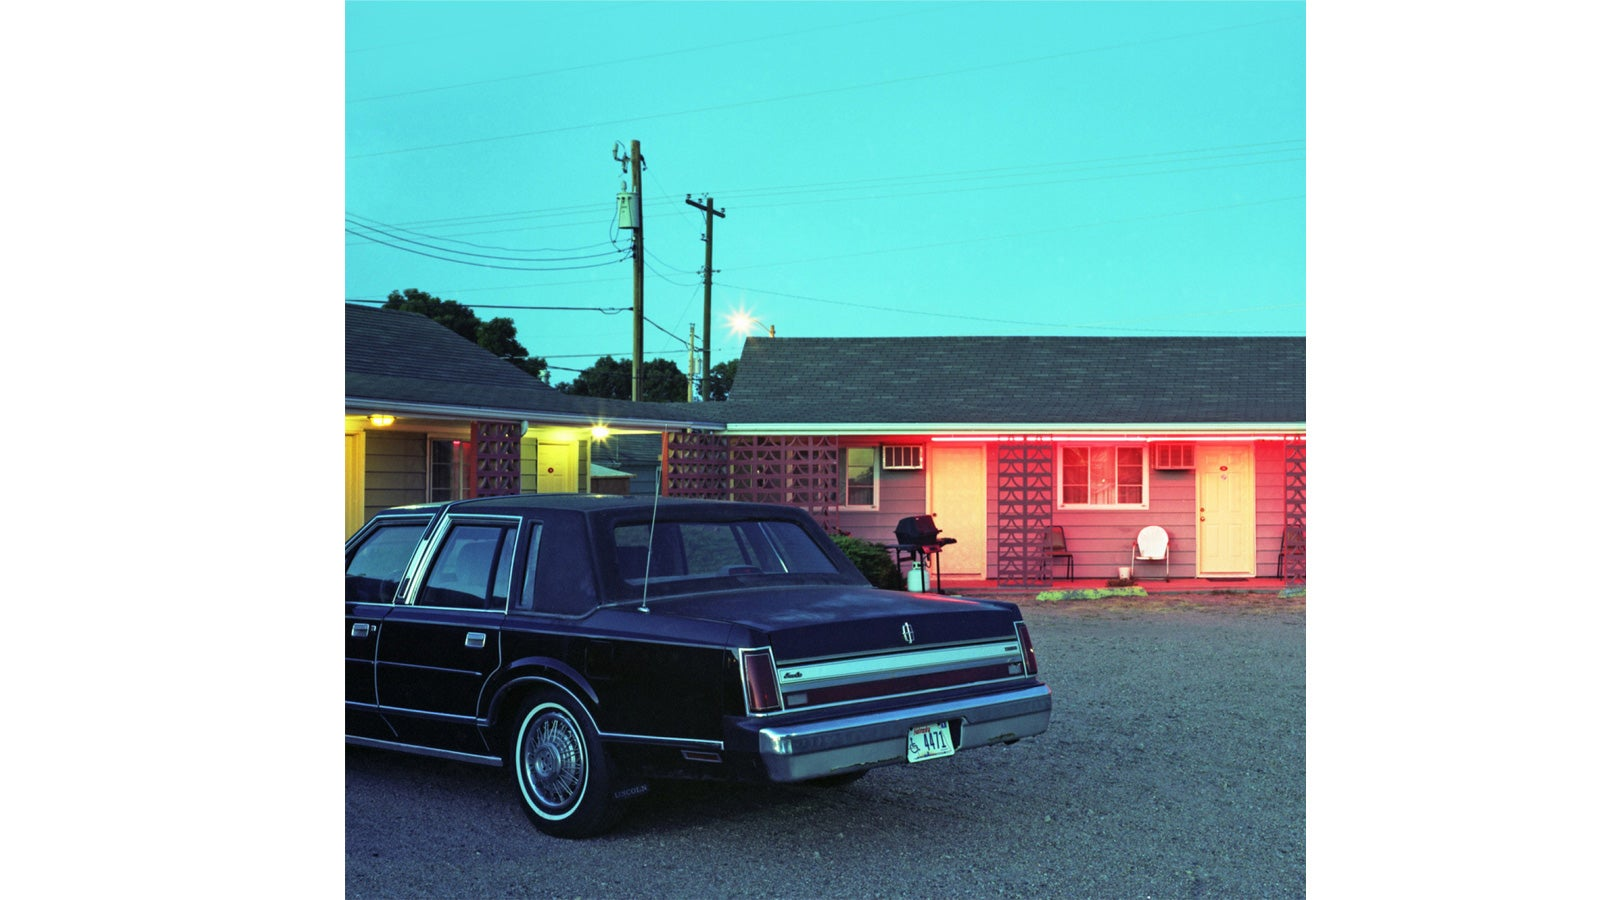 A vintage car in front of a motel at dusk